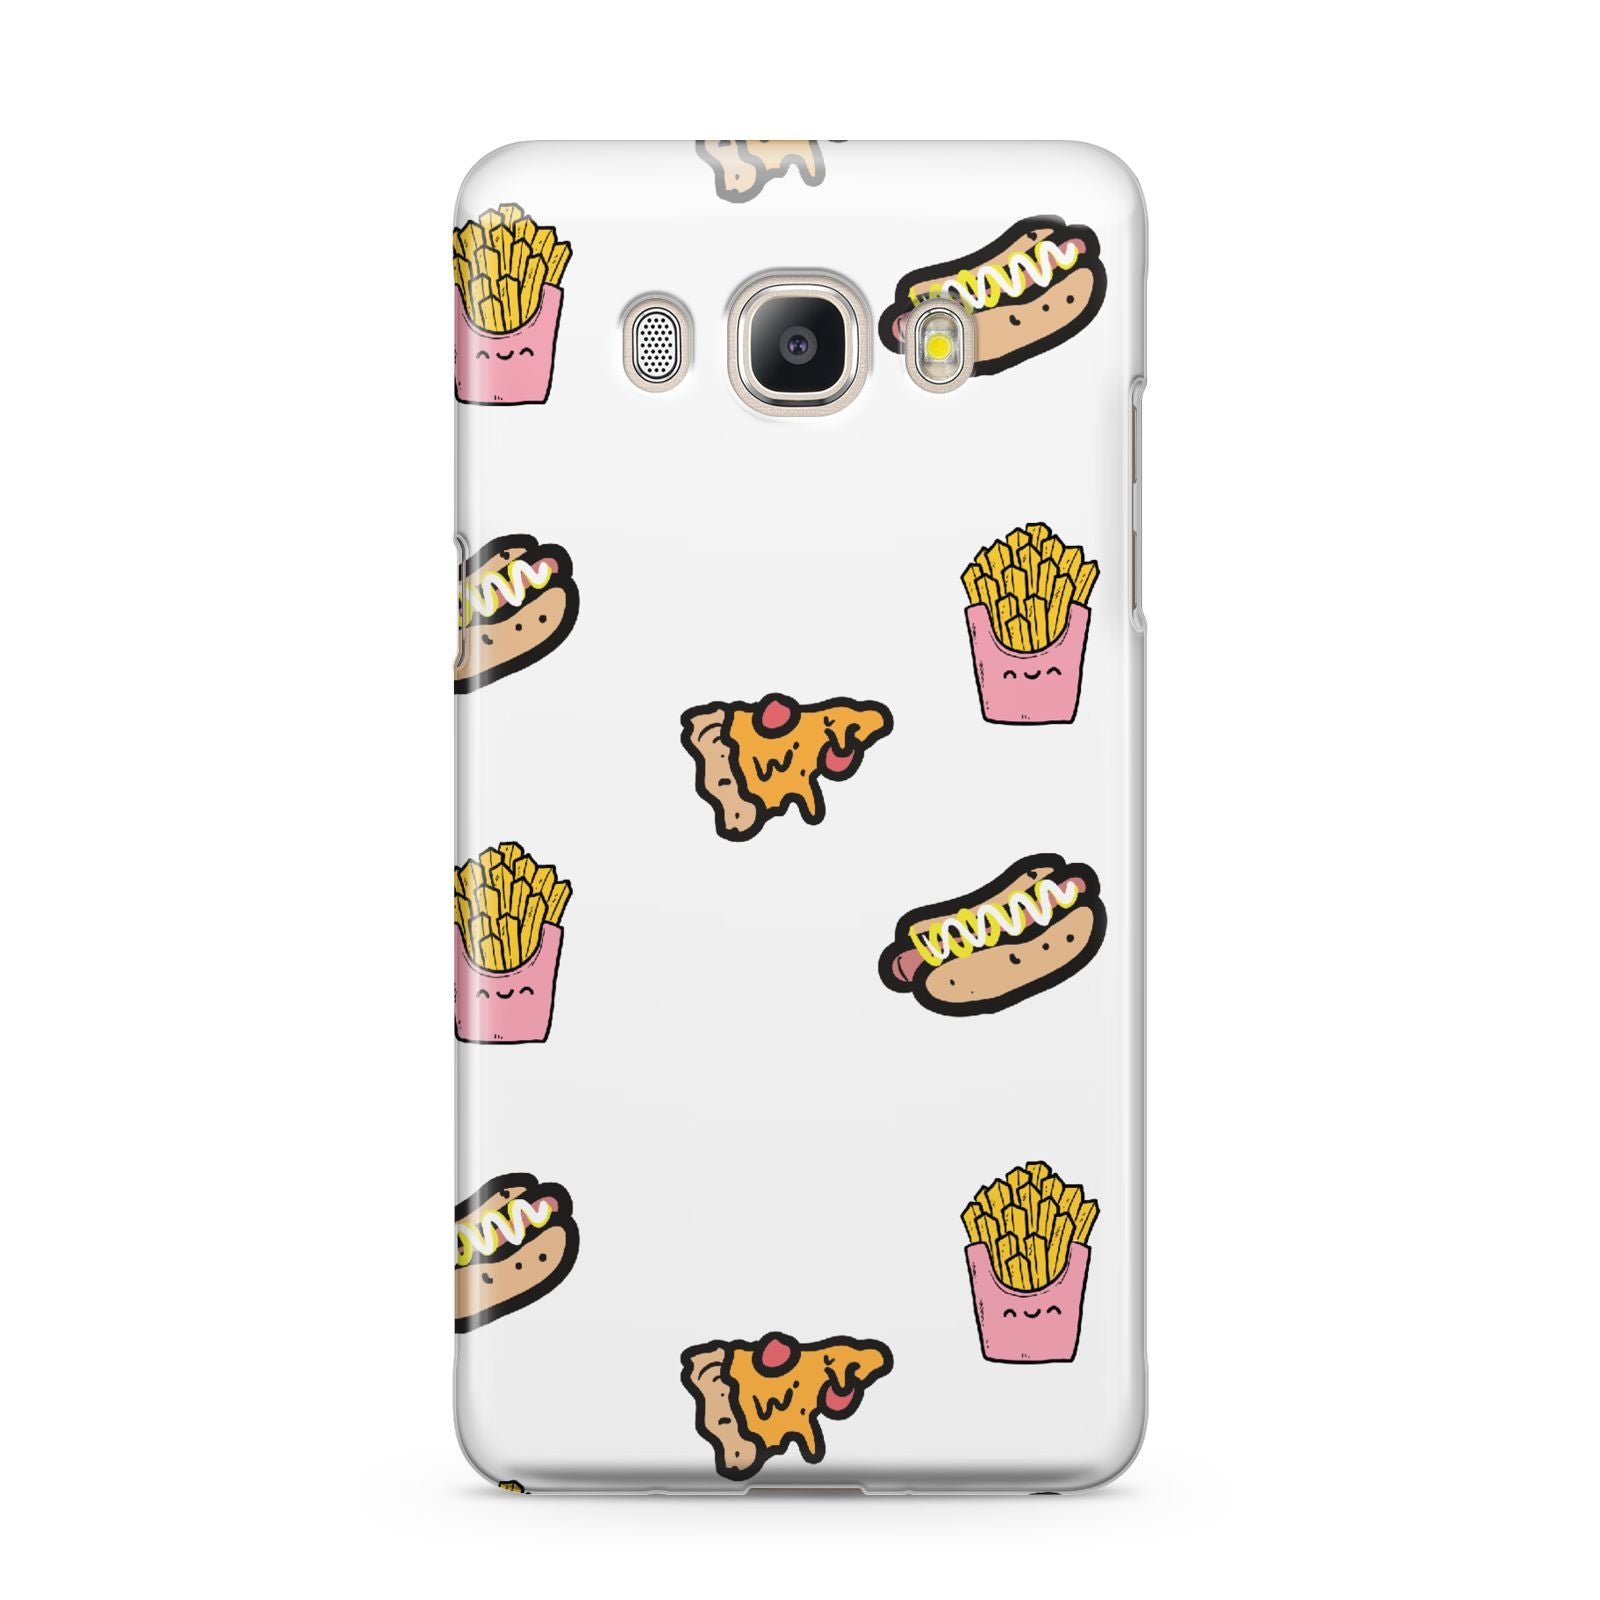 Fries Pizza Hot Dog Samsung Galaxy J5 2016 Case